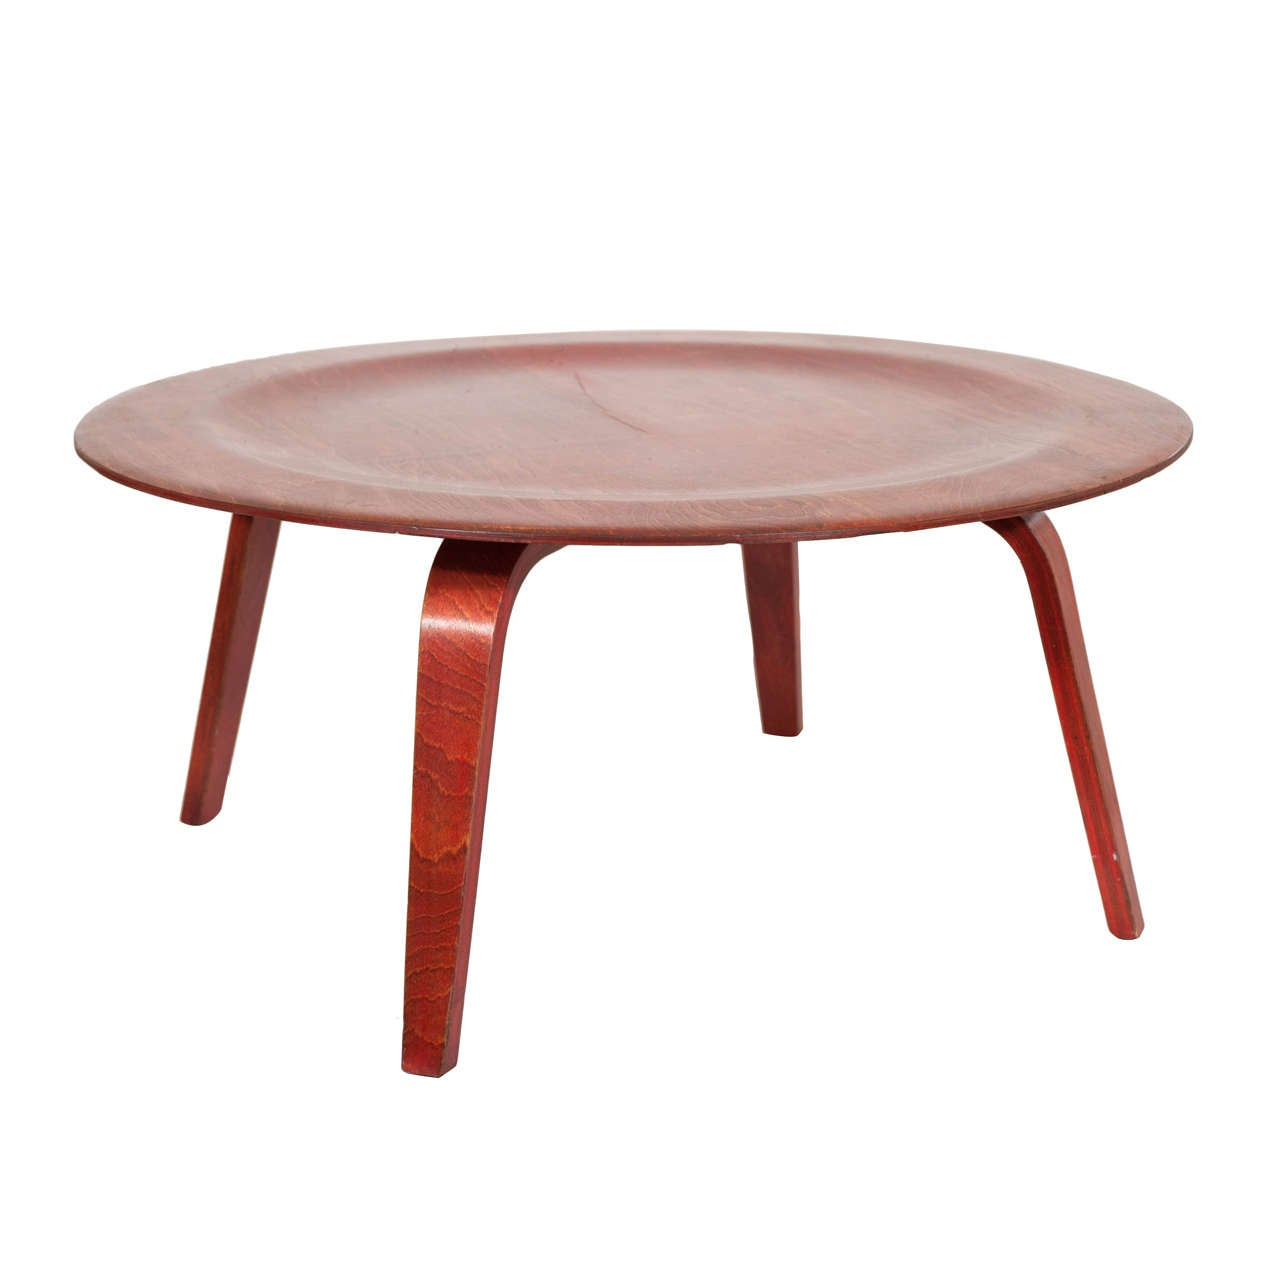 charles eames ctw coffee table with red aniline finish at. Black Bedroom Furniture Sets. Home Design Ideas